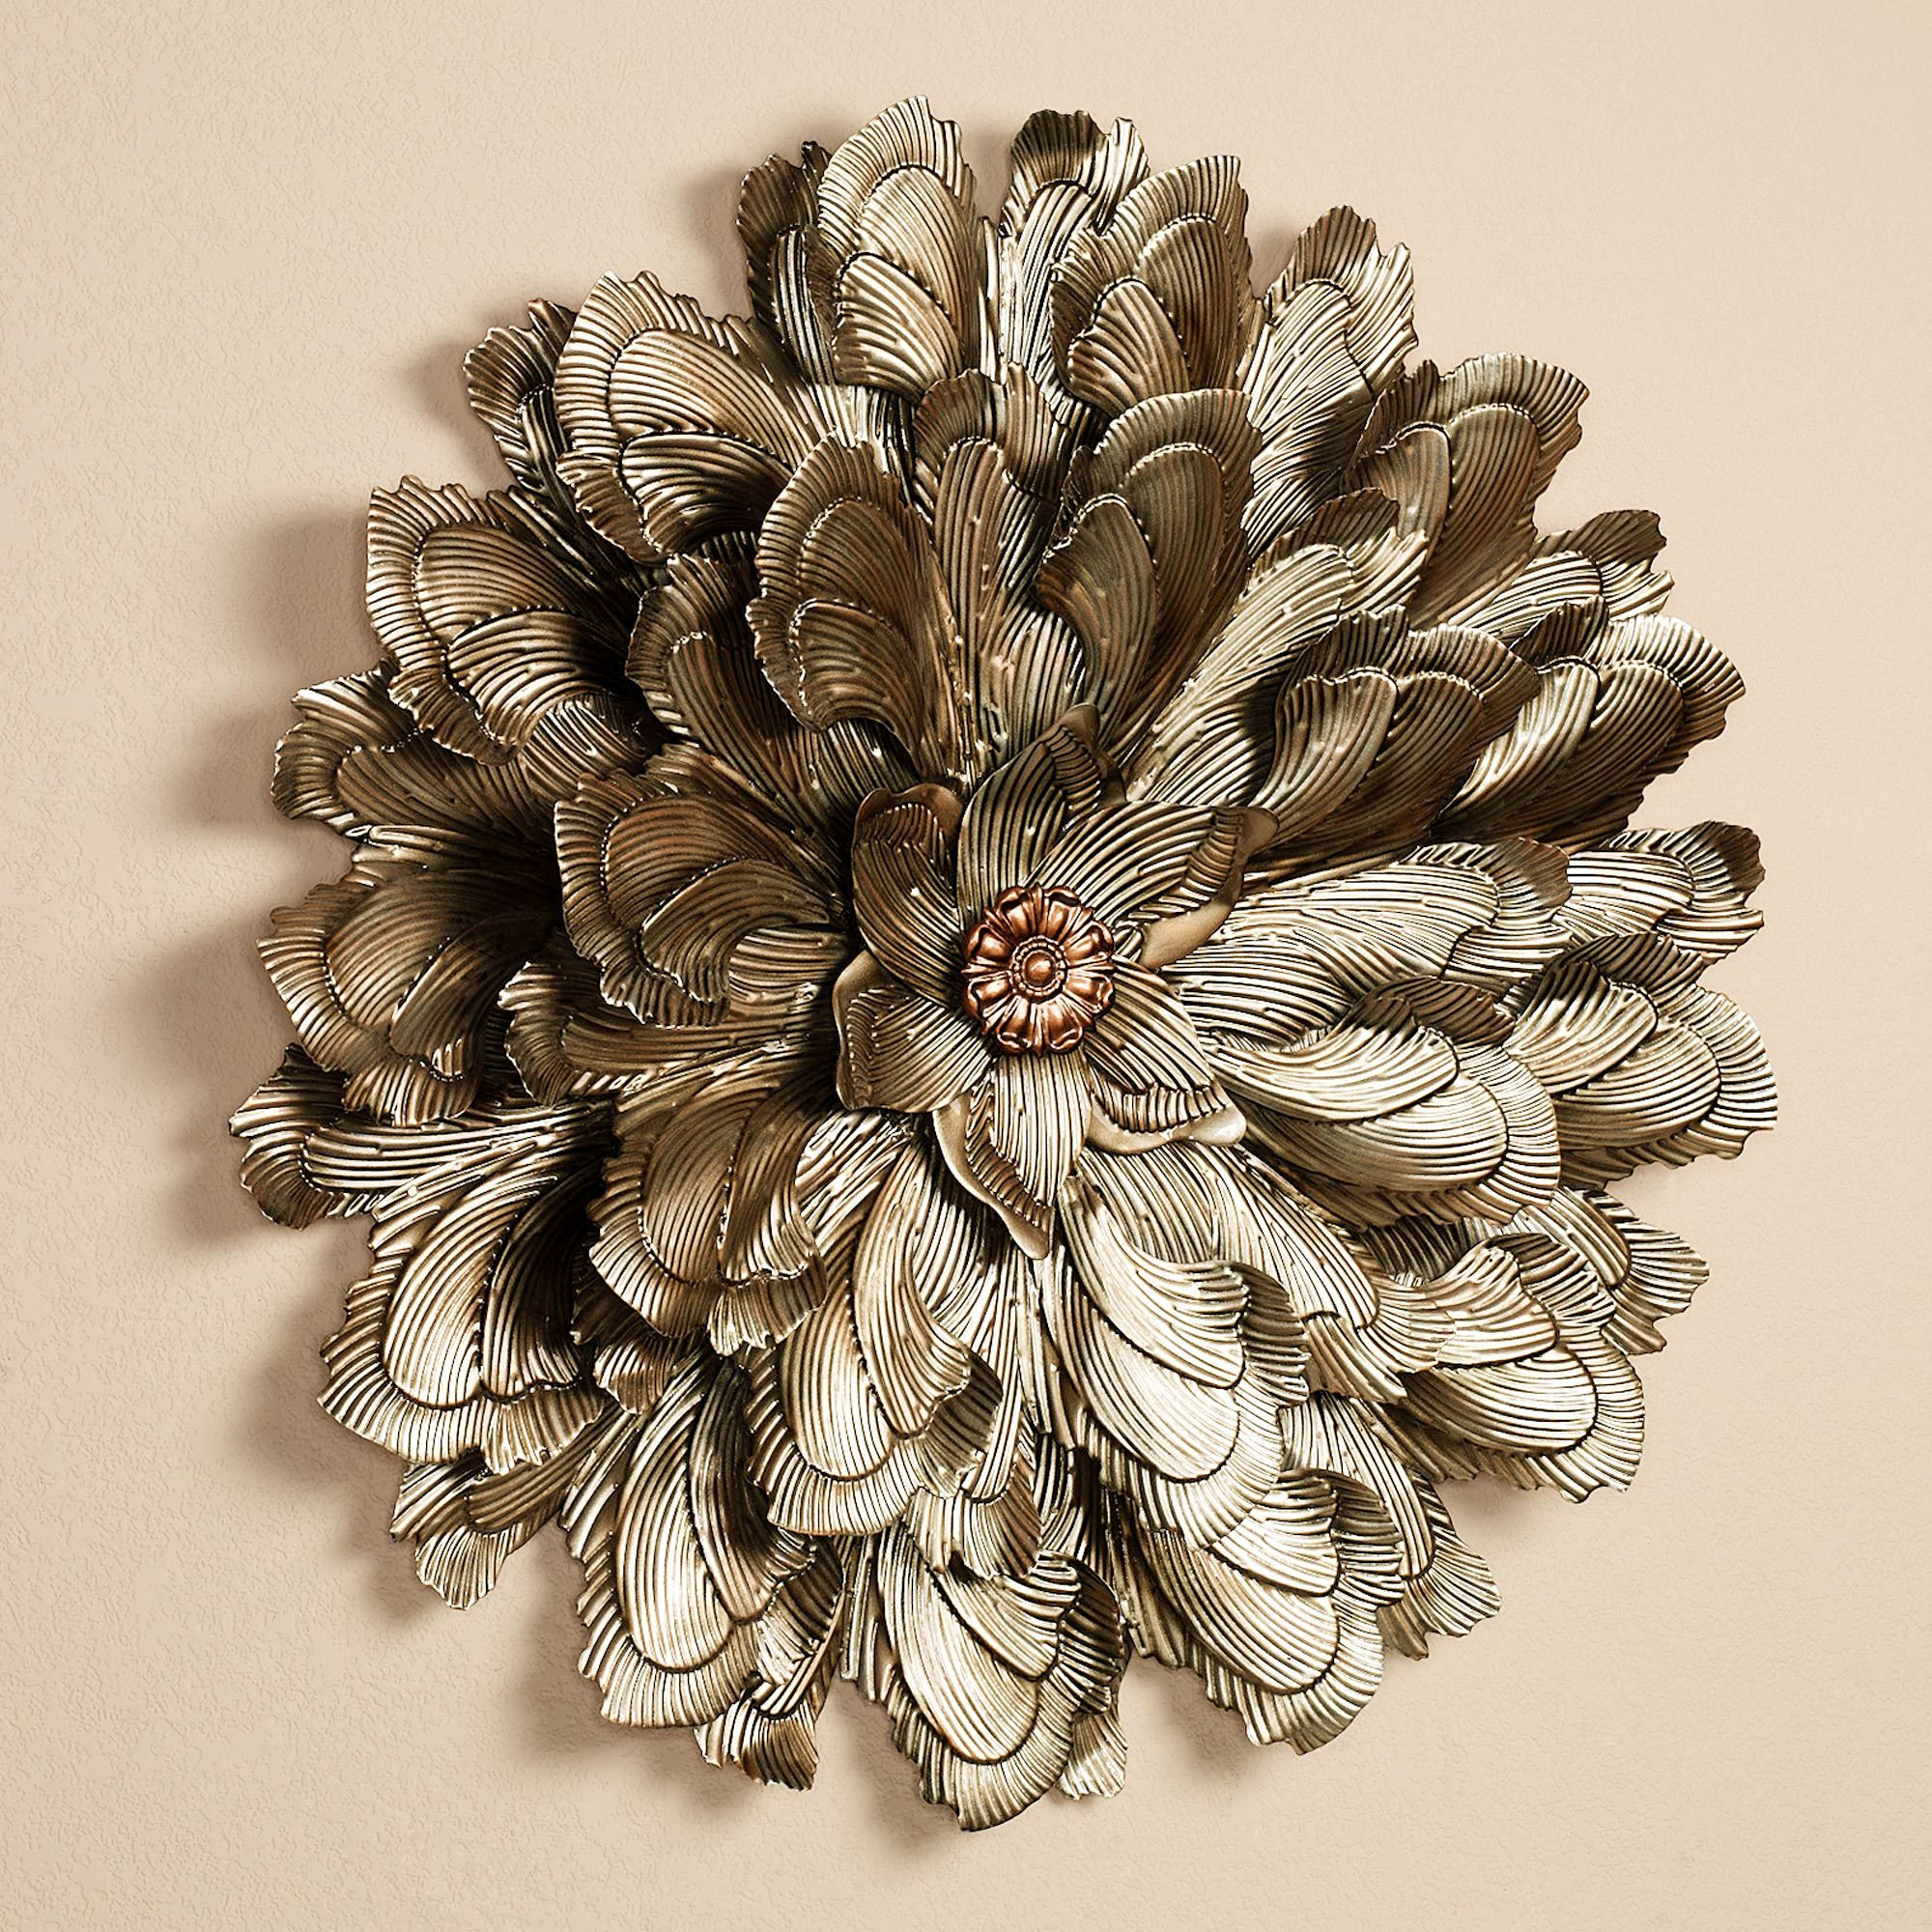 Delicate Flower Blossom Metal Wall Sculpture on Hanging Wall Sconces For Flowers id=89450